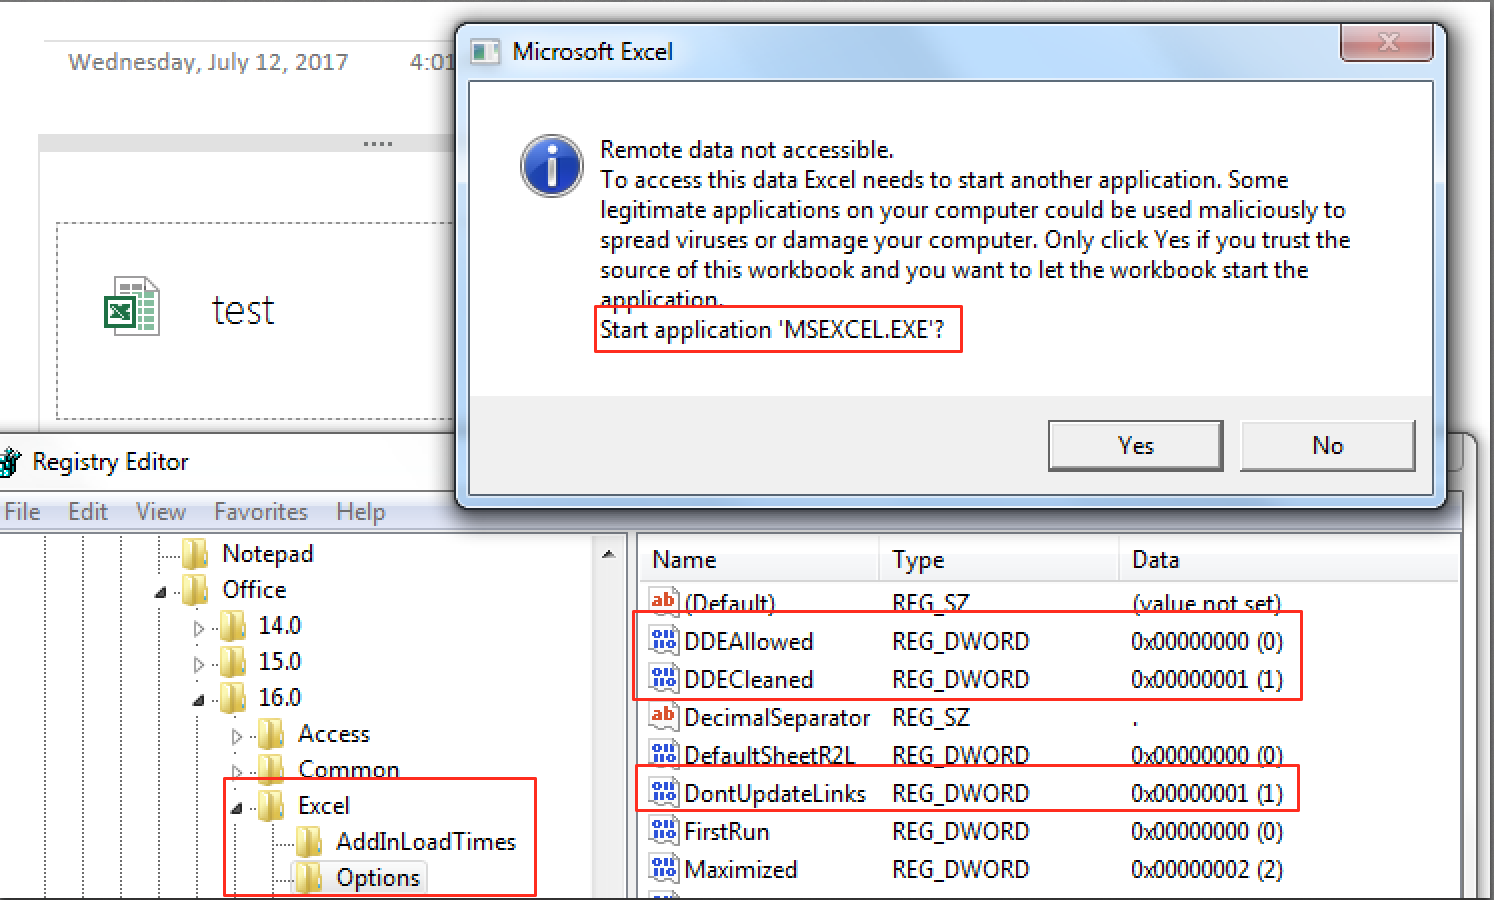 excel 2016 protected view registry